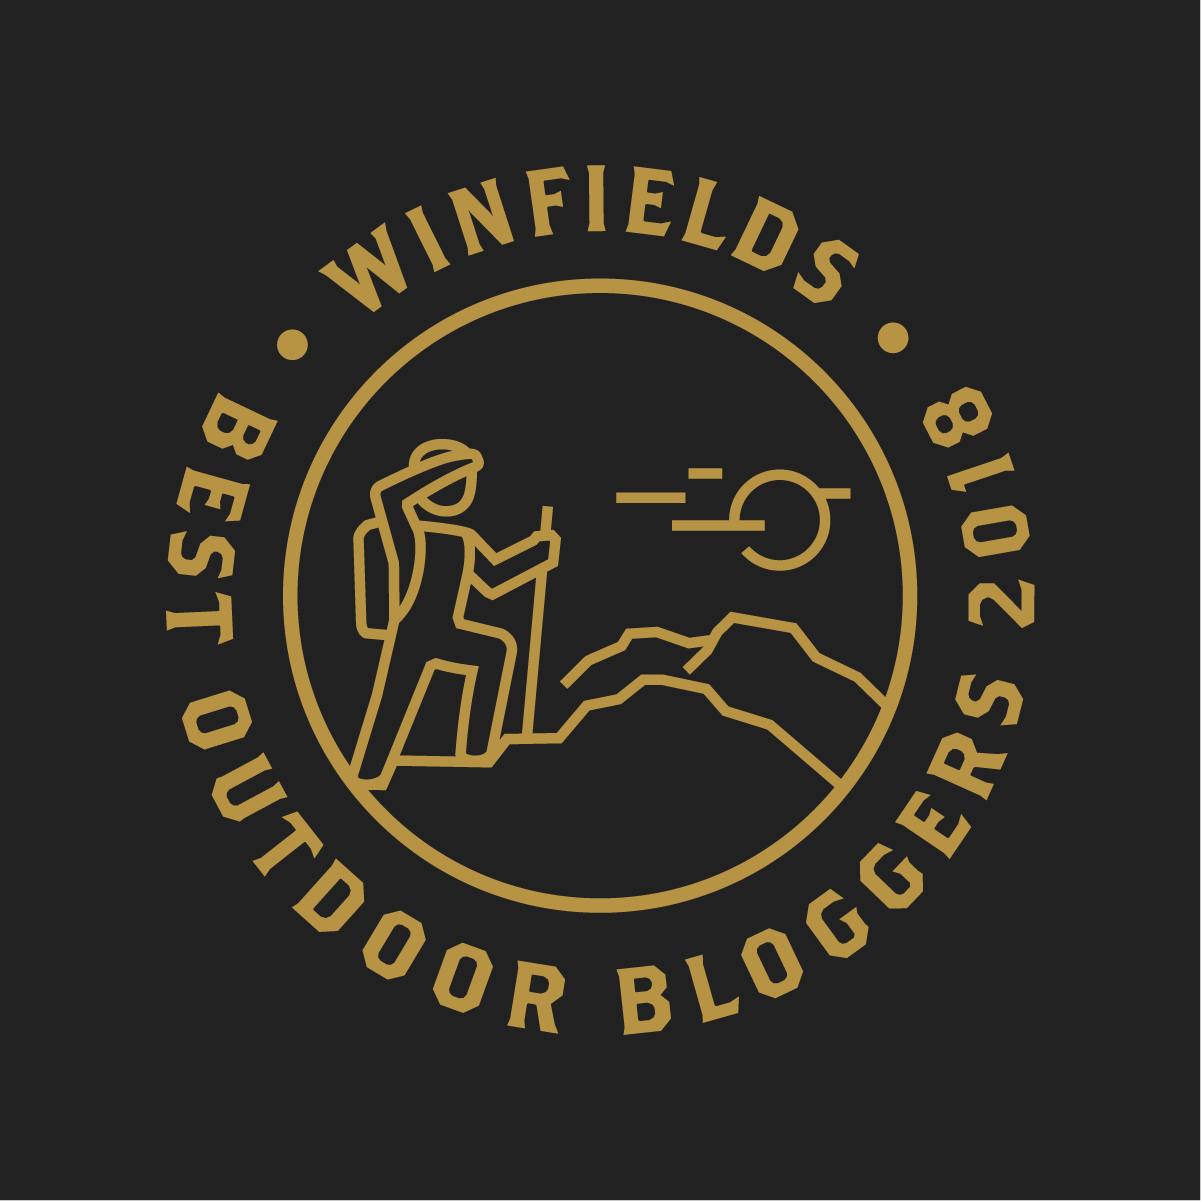 Winfields Best Outdoor, Walking, Hiking and Camping Bloggers for 2018